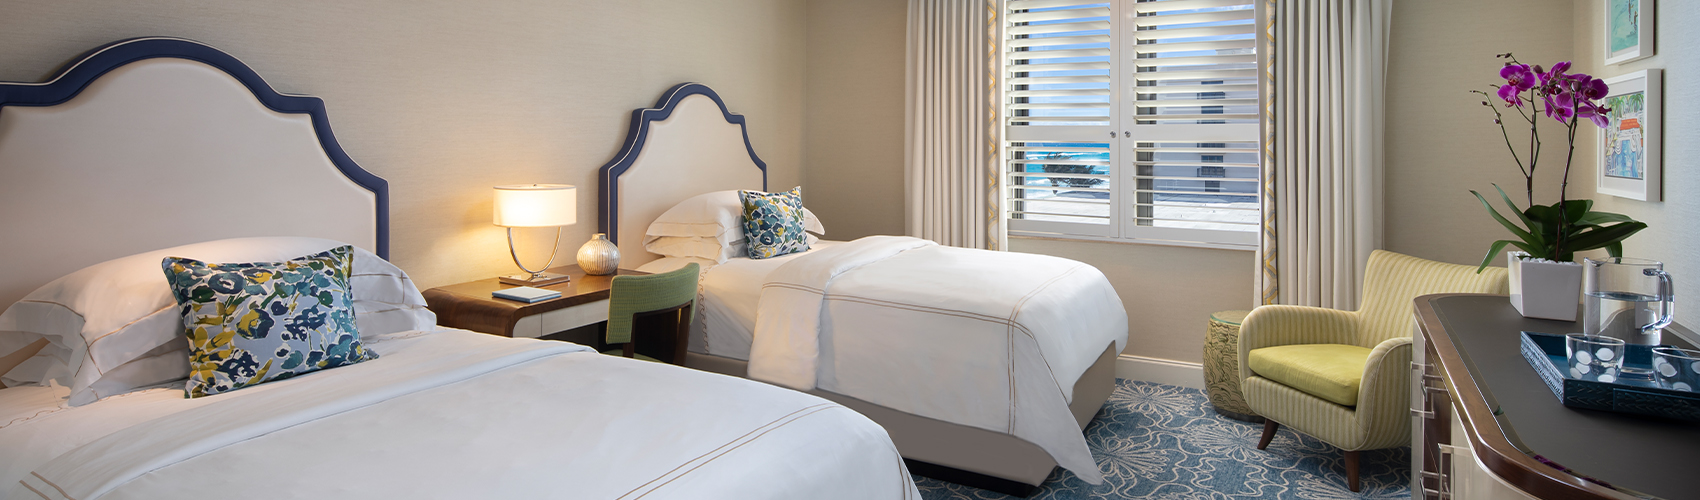 Deluxe Guest Room with Partial Ocean View and Double Beds